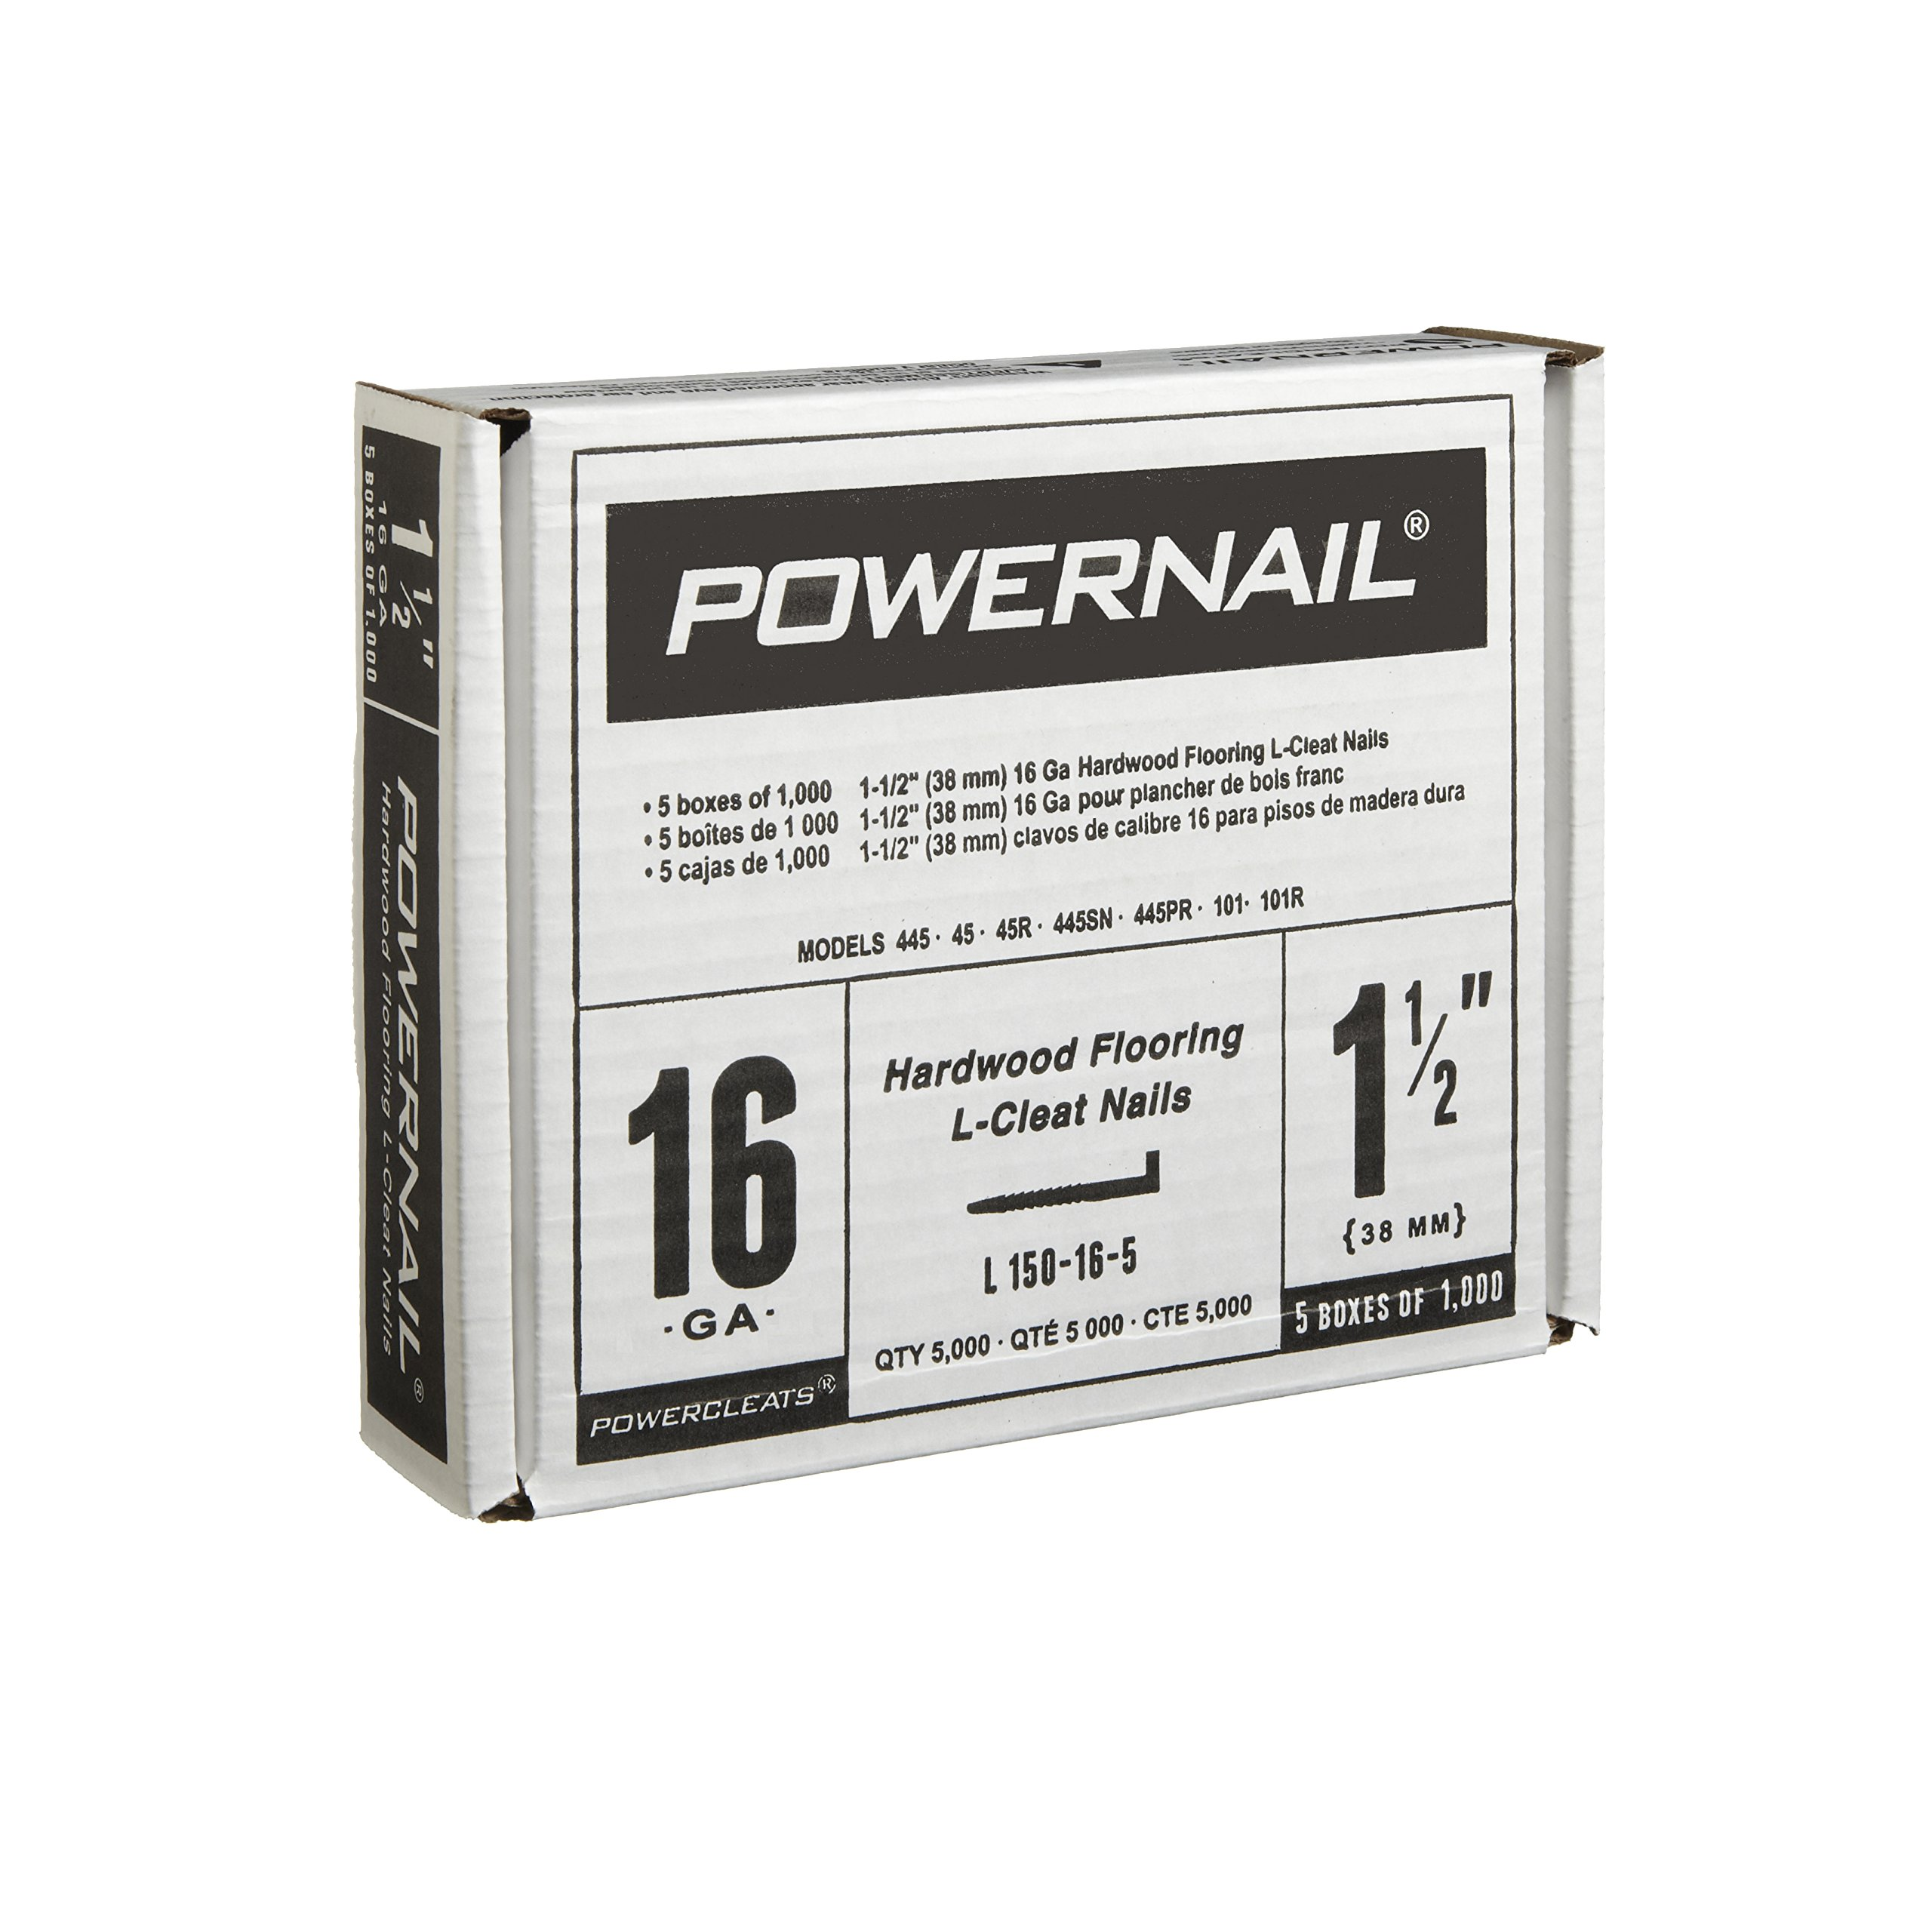 Powernail 16 Gage 1 1/2'' Cleats. Flooring Nails Box of 5,000